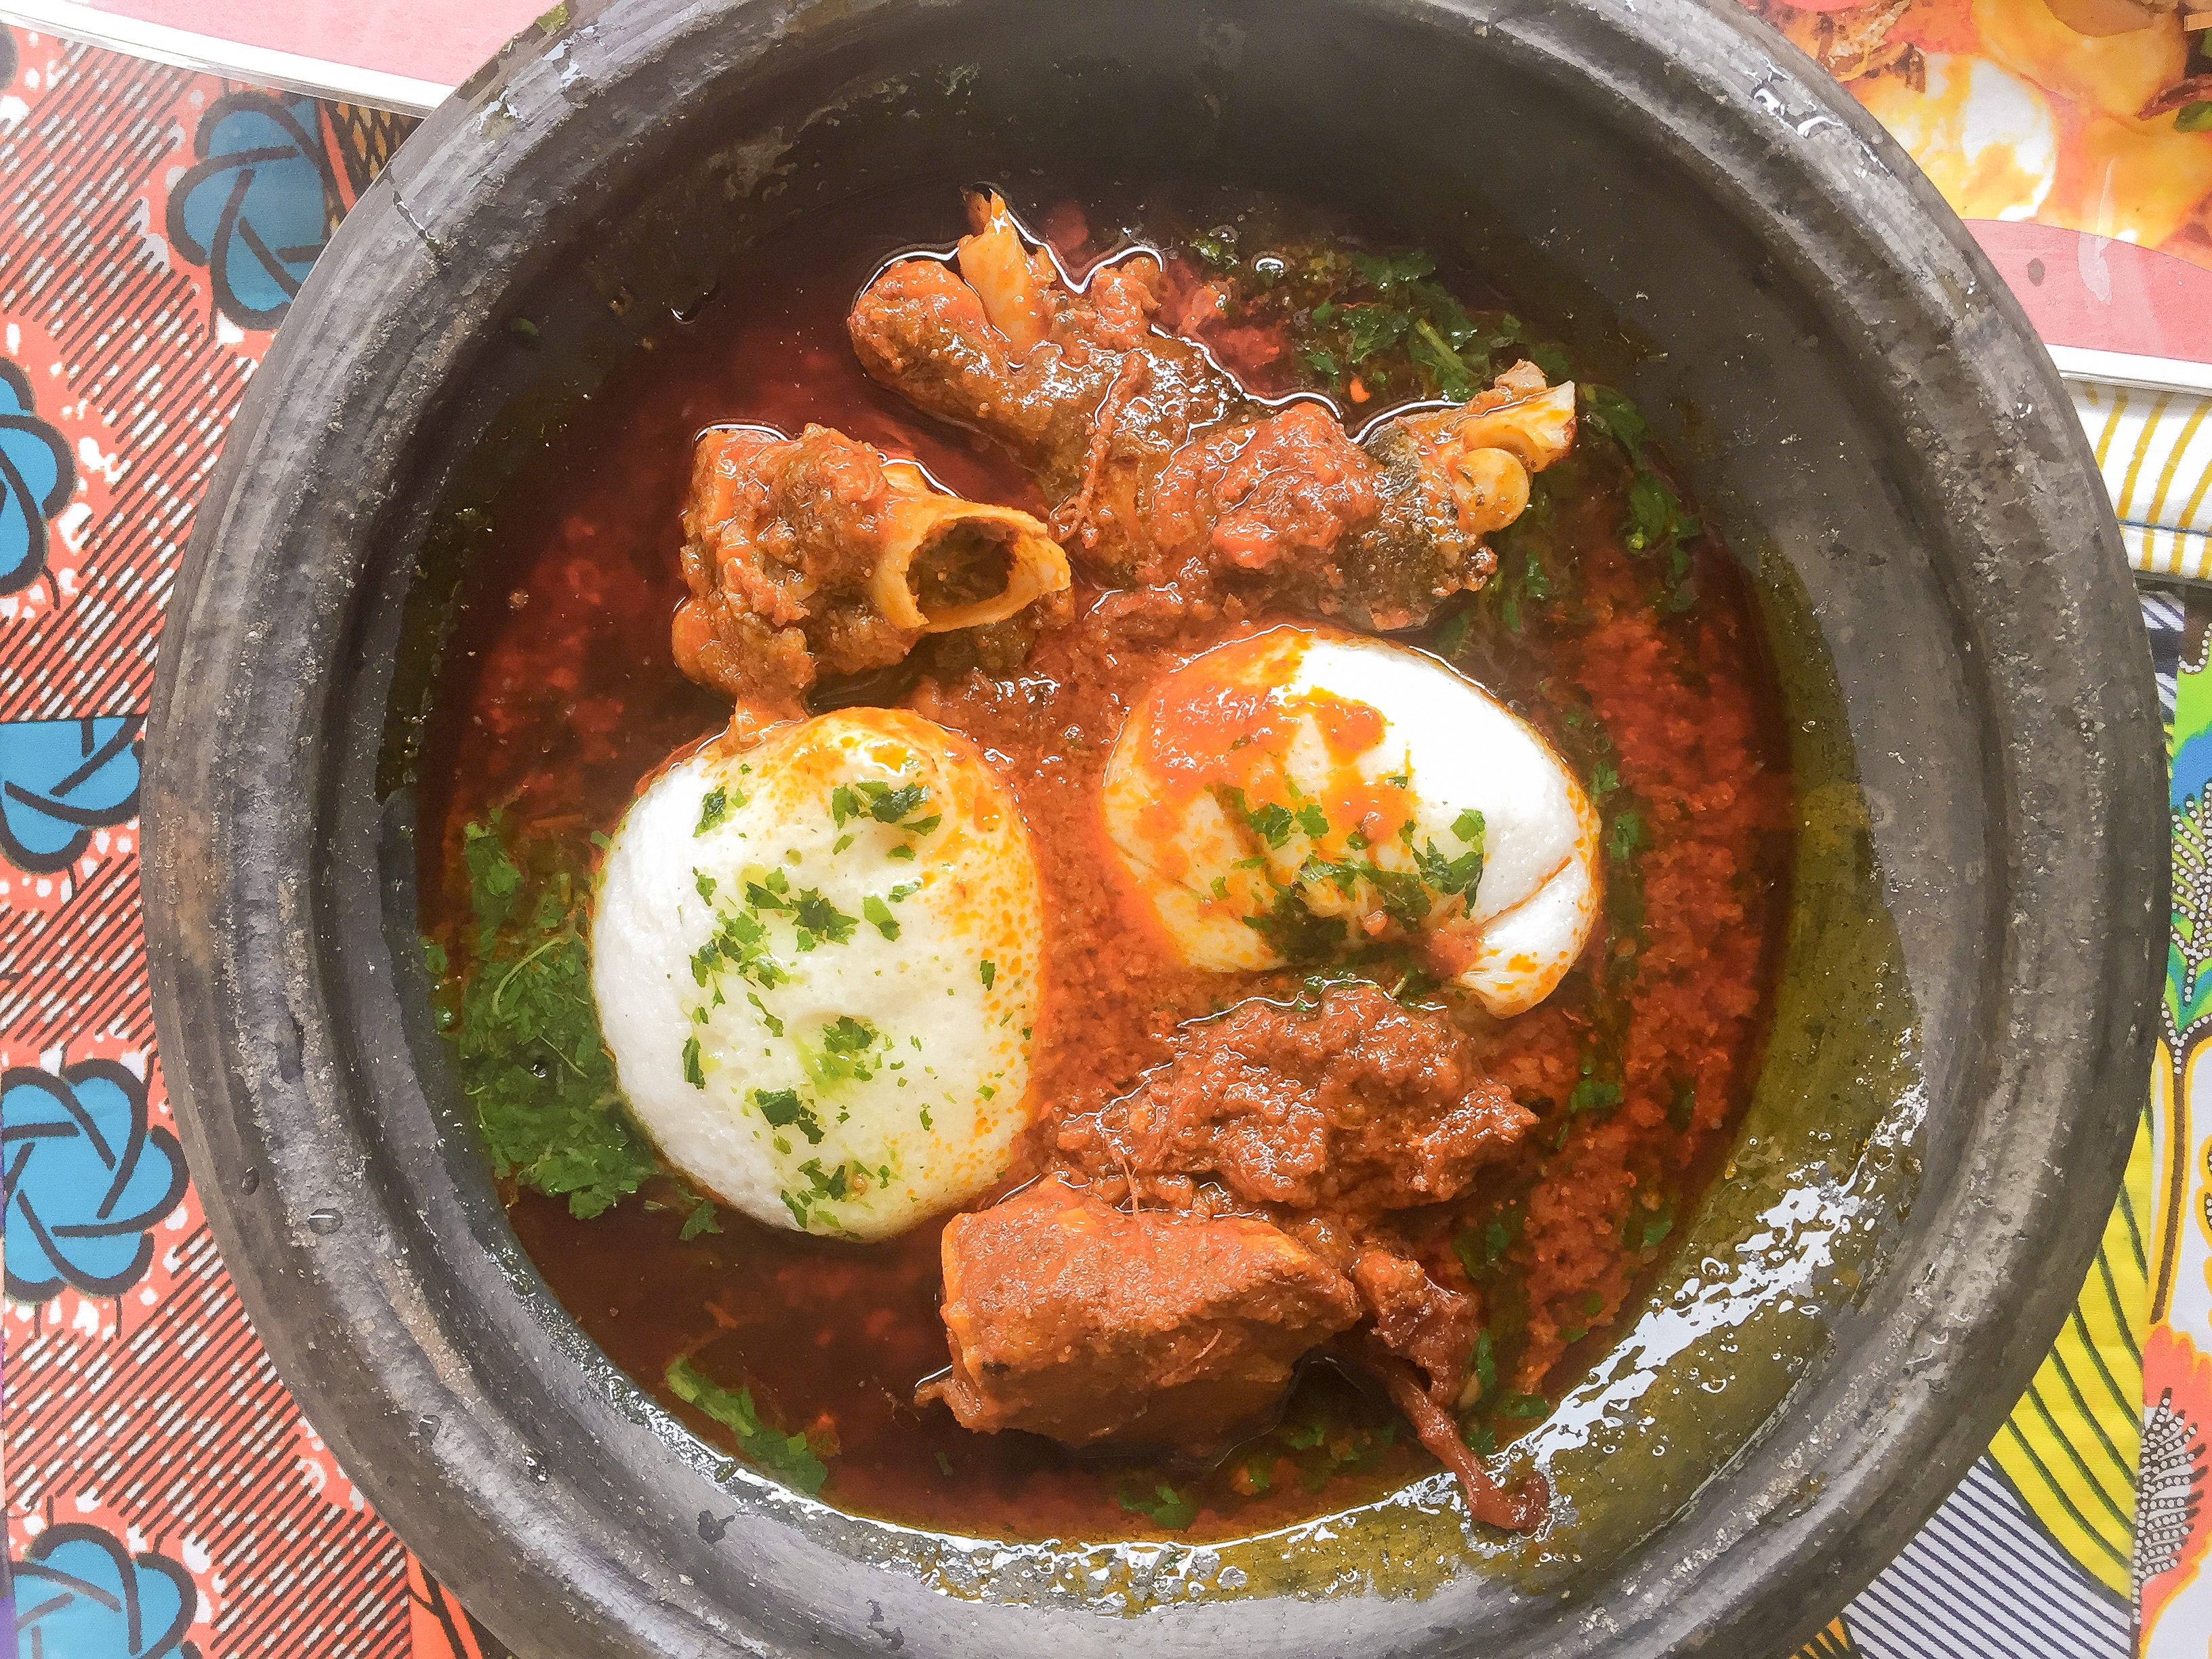 An image of Tuo Zaafi in a local earthen ware bowl, one of Ghana's staple dishes